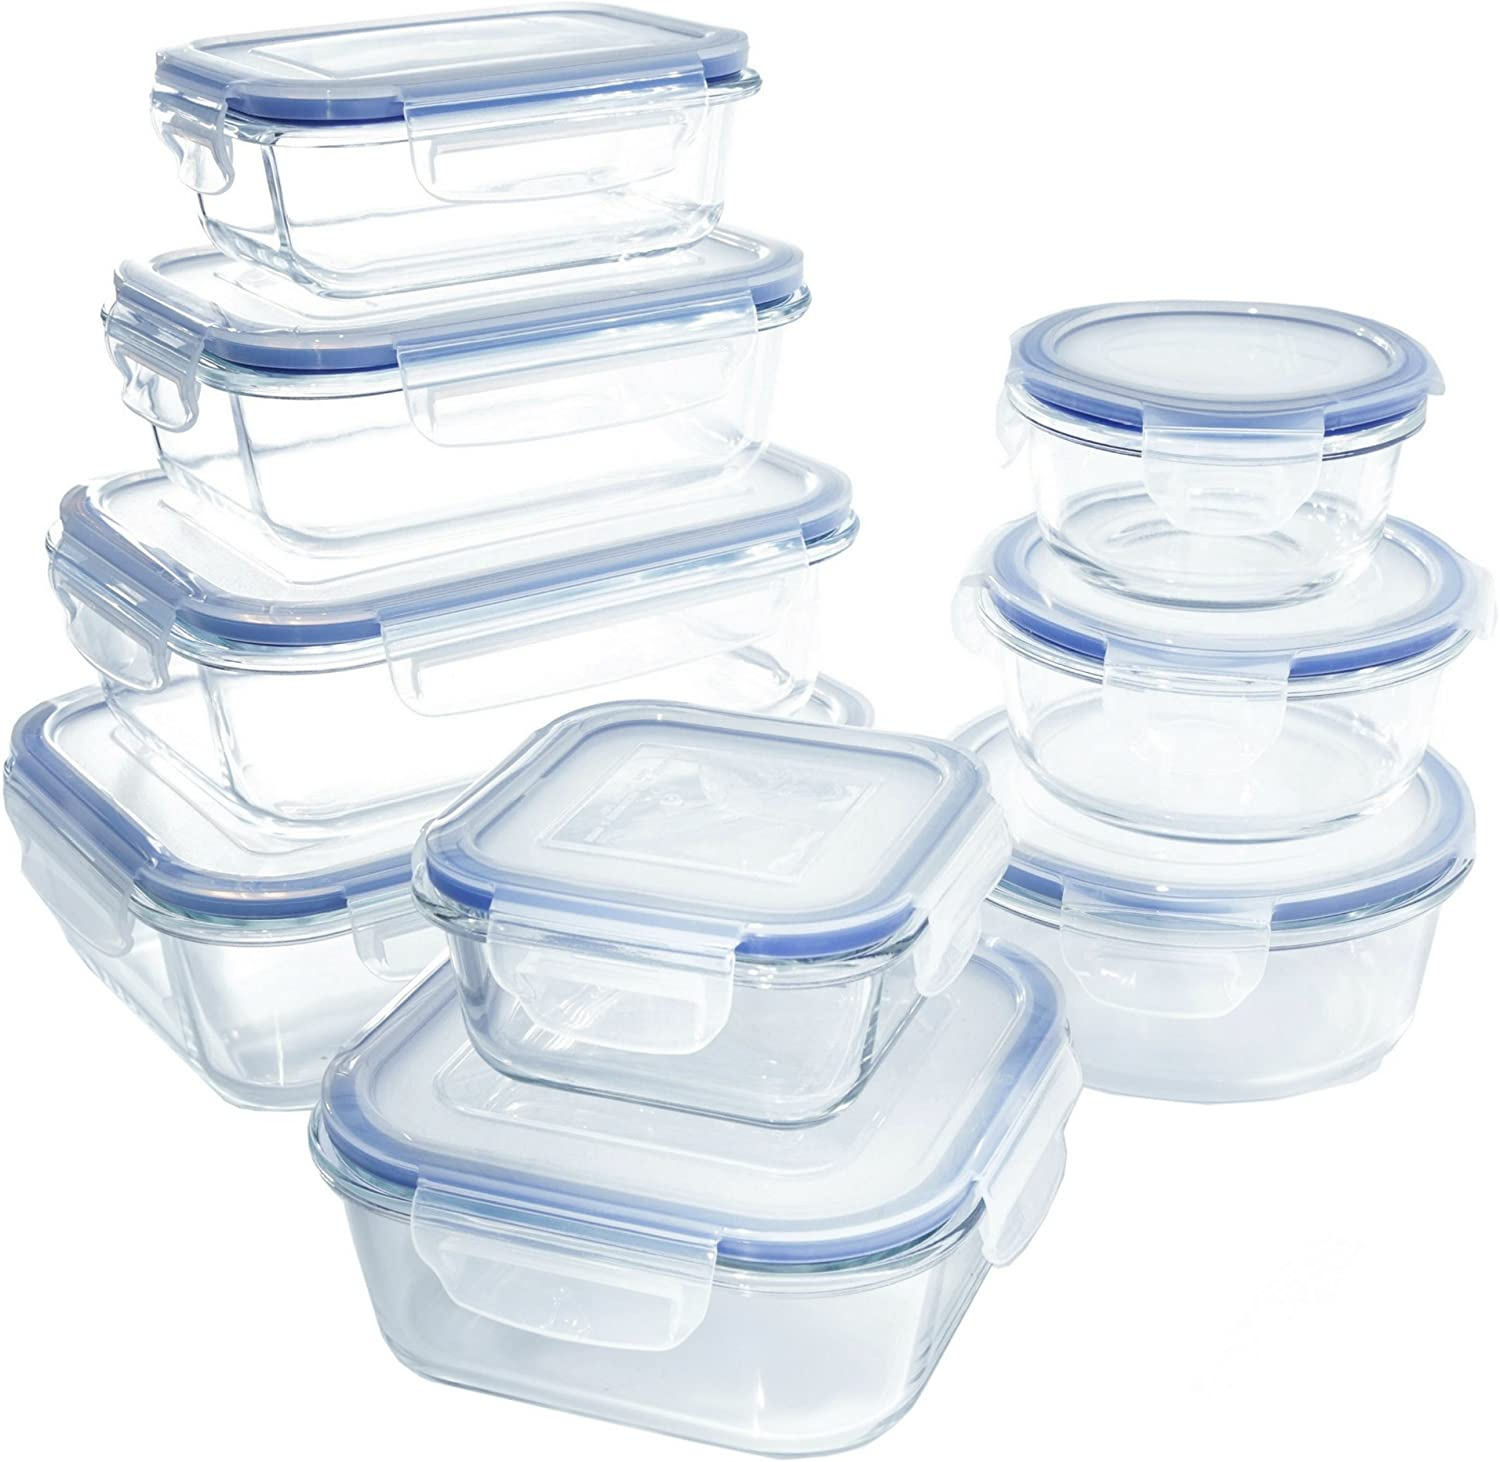 1790 Glass Food Storage Containers with Lids, Glass Meal Prep Containers, Airtight Glass Lunch Boxes, BPA-Free, Approved & Leak Proof (18 Piece - 9PK) Up to 1040℉